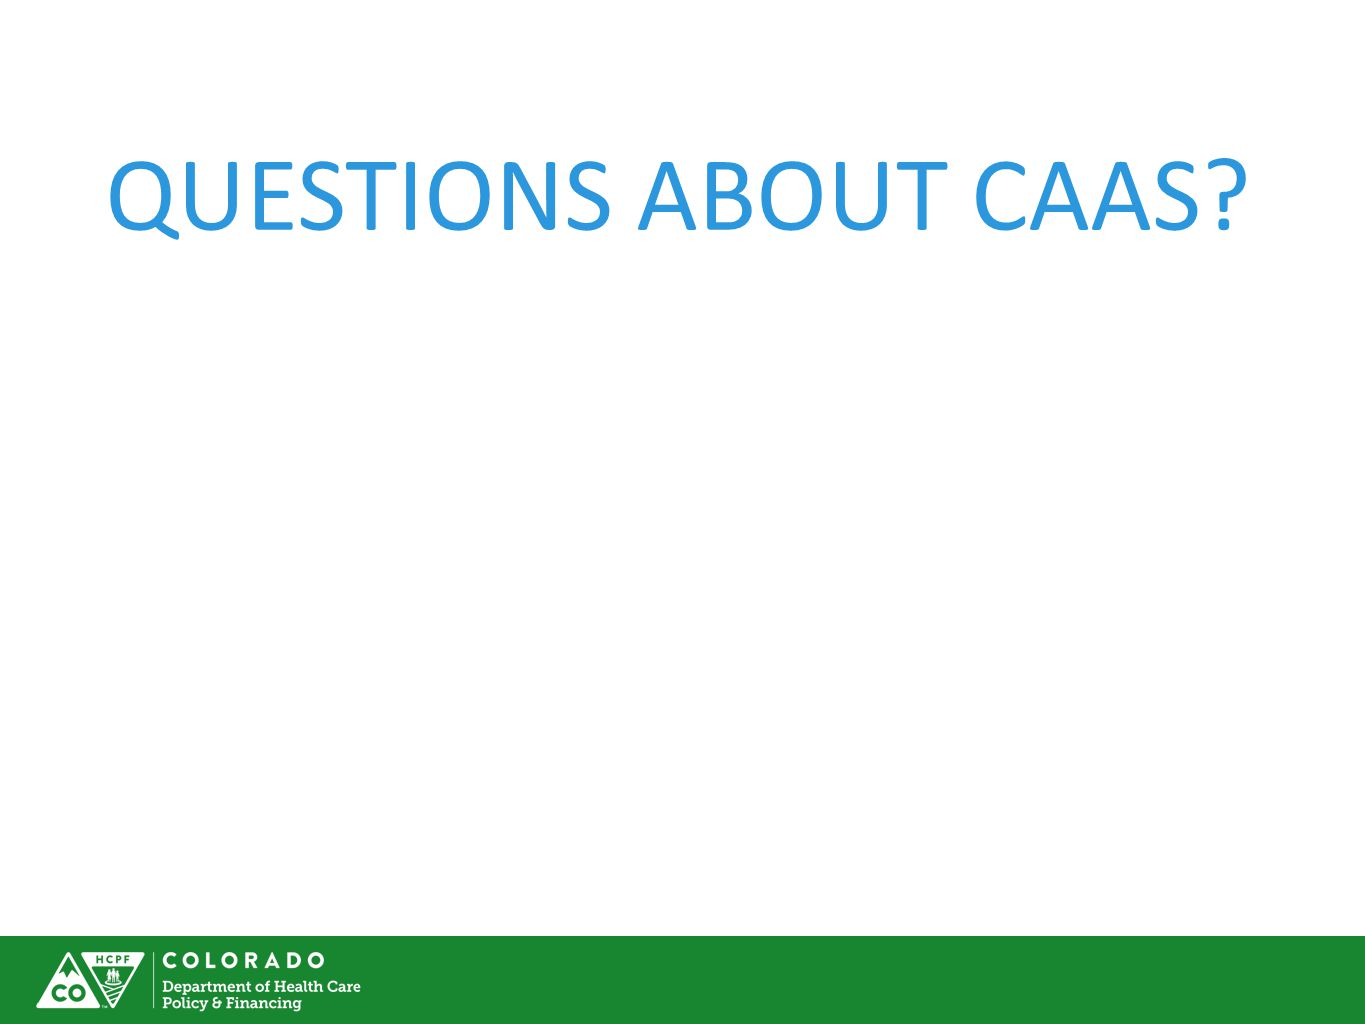 QUESTIONS ABOUT CAAS